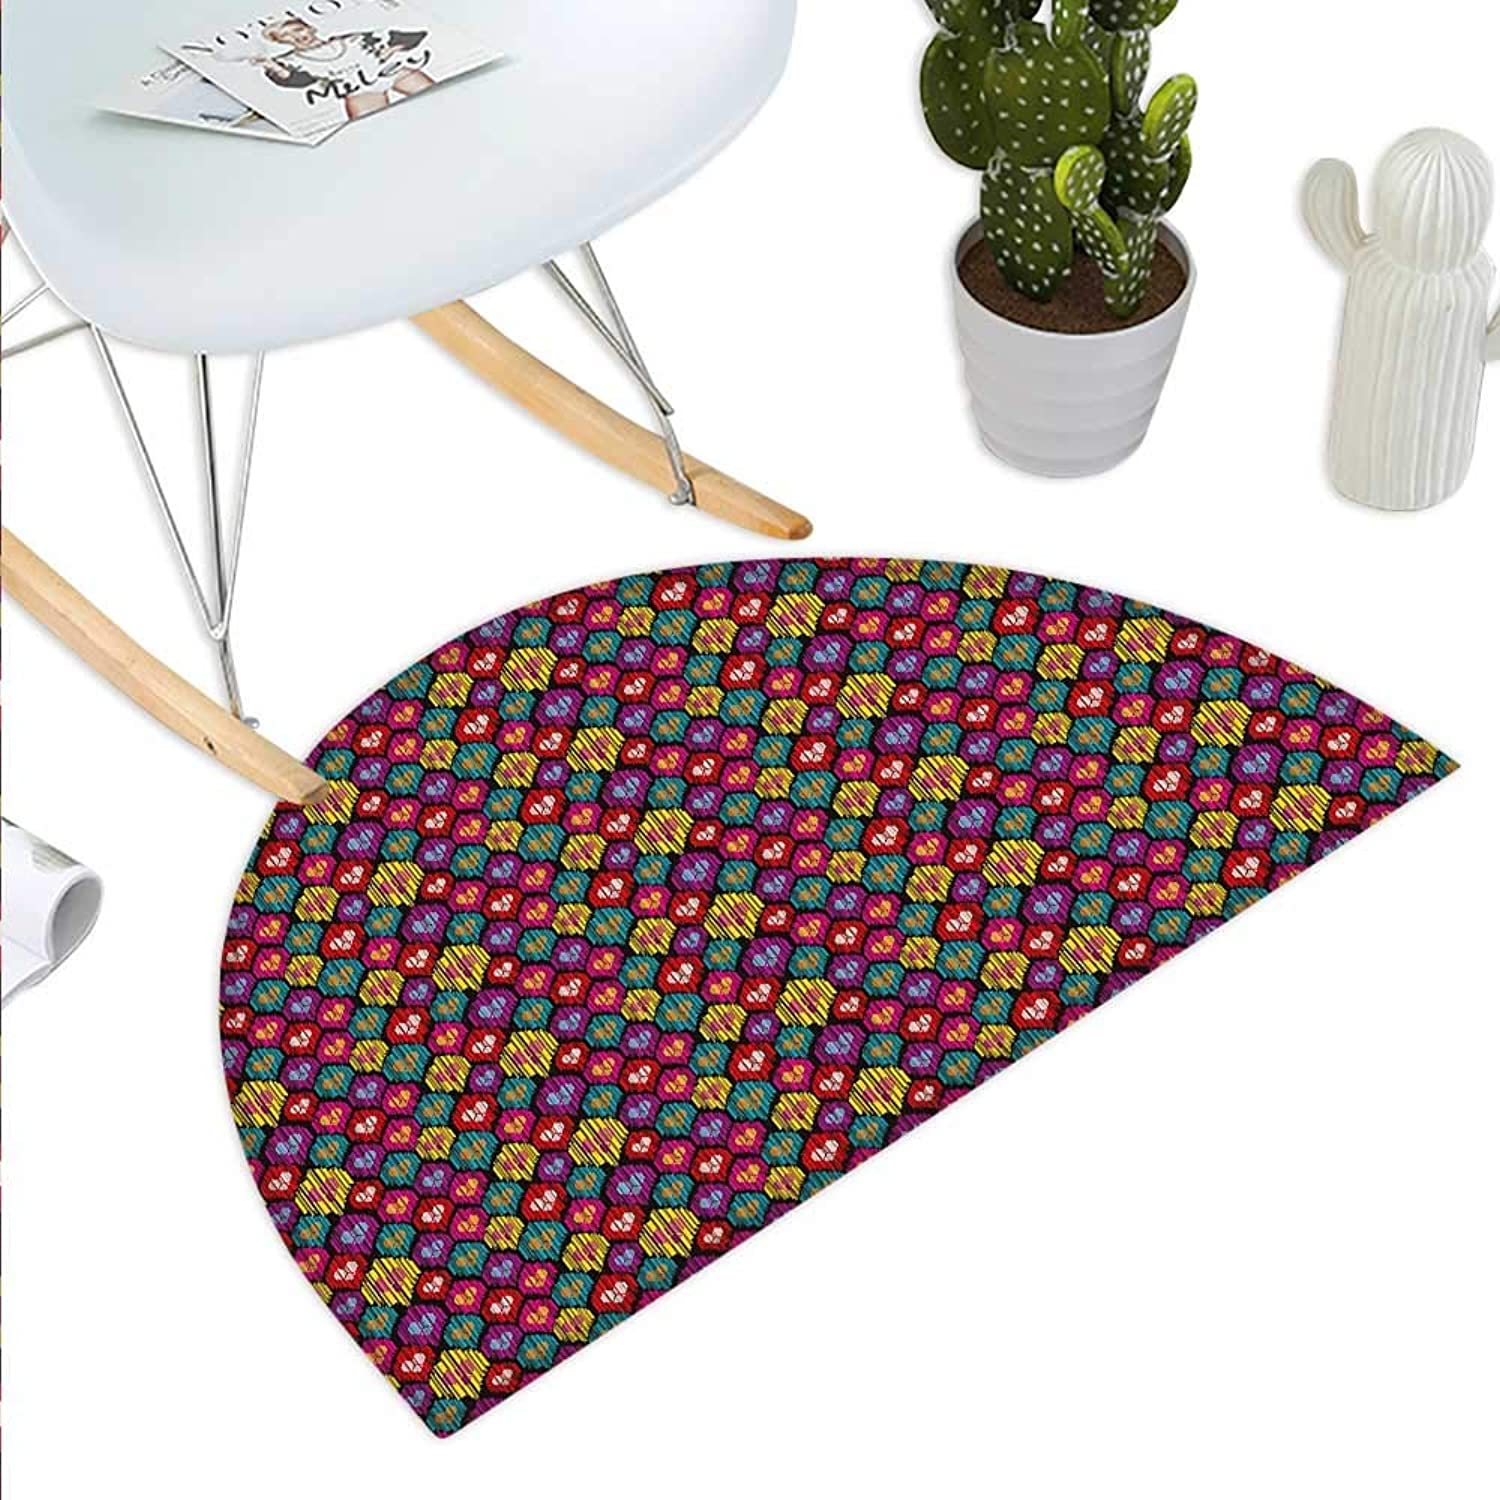 Ikat Semicircle Doormat colorful Ethnic Pattern with Heart Shapes and Lines Bohemian Asian Kazakhstan Motifs Halfmoon doormats H 43.3  xD 64.9  Multicolor